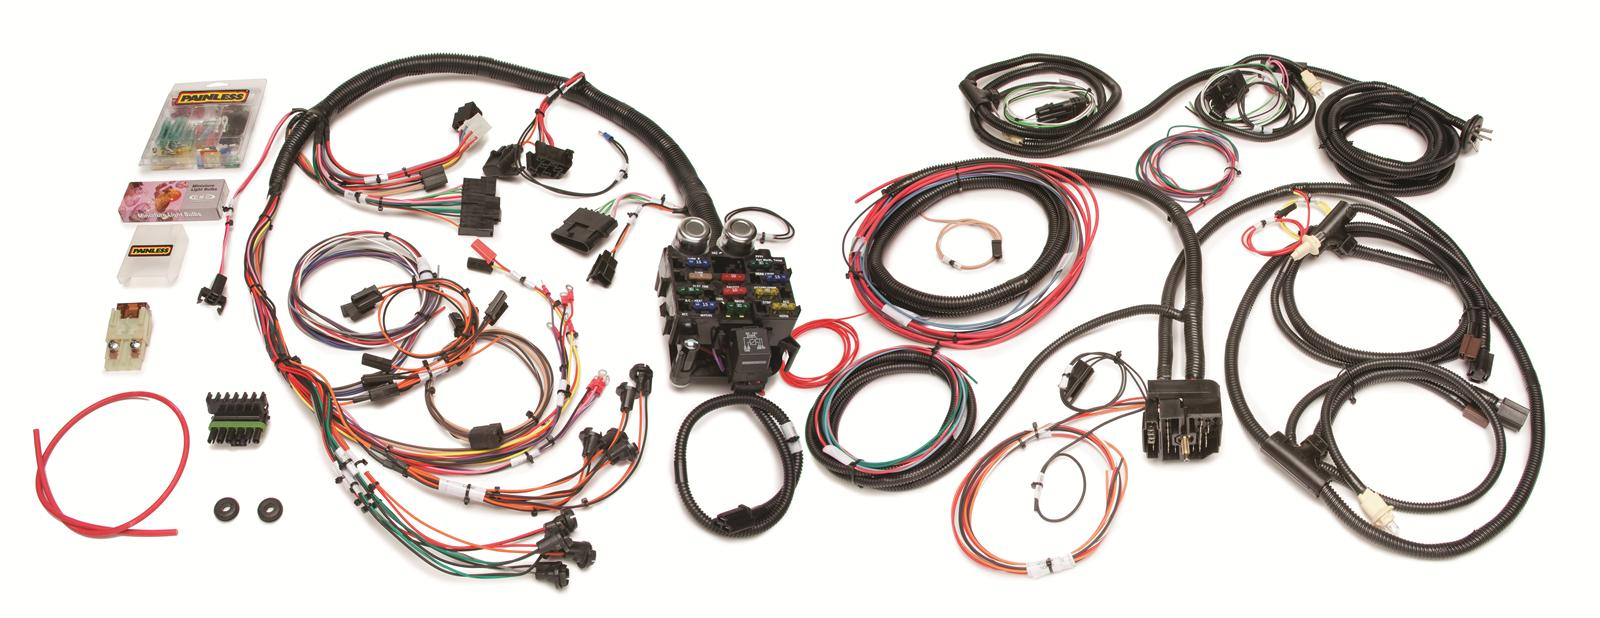 painless performance circuit direct fit jeep cj harnesses  painless performance 21 circuit direct fit jeep cj harnesses 10110 shipping on orders over 99 at summit racing